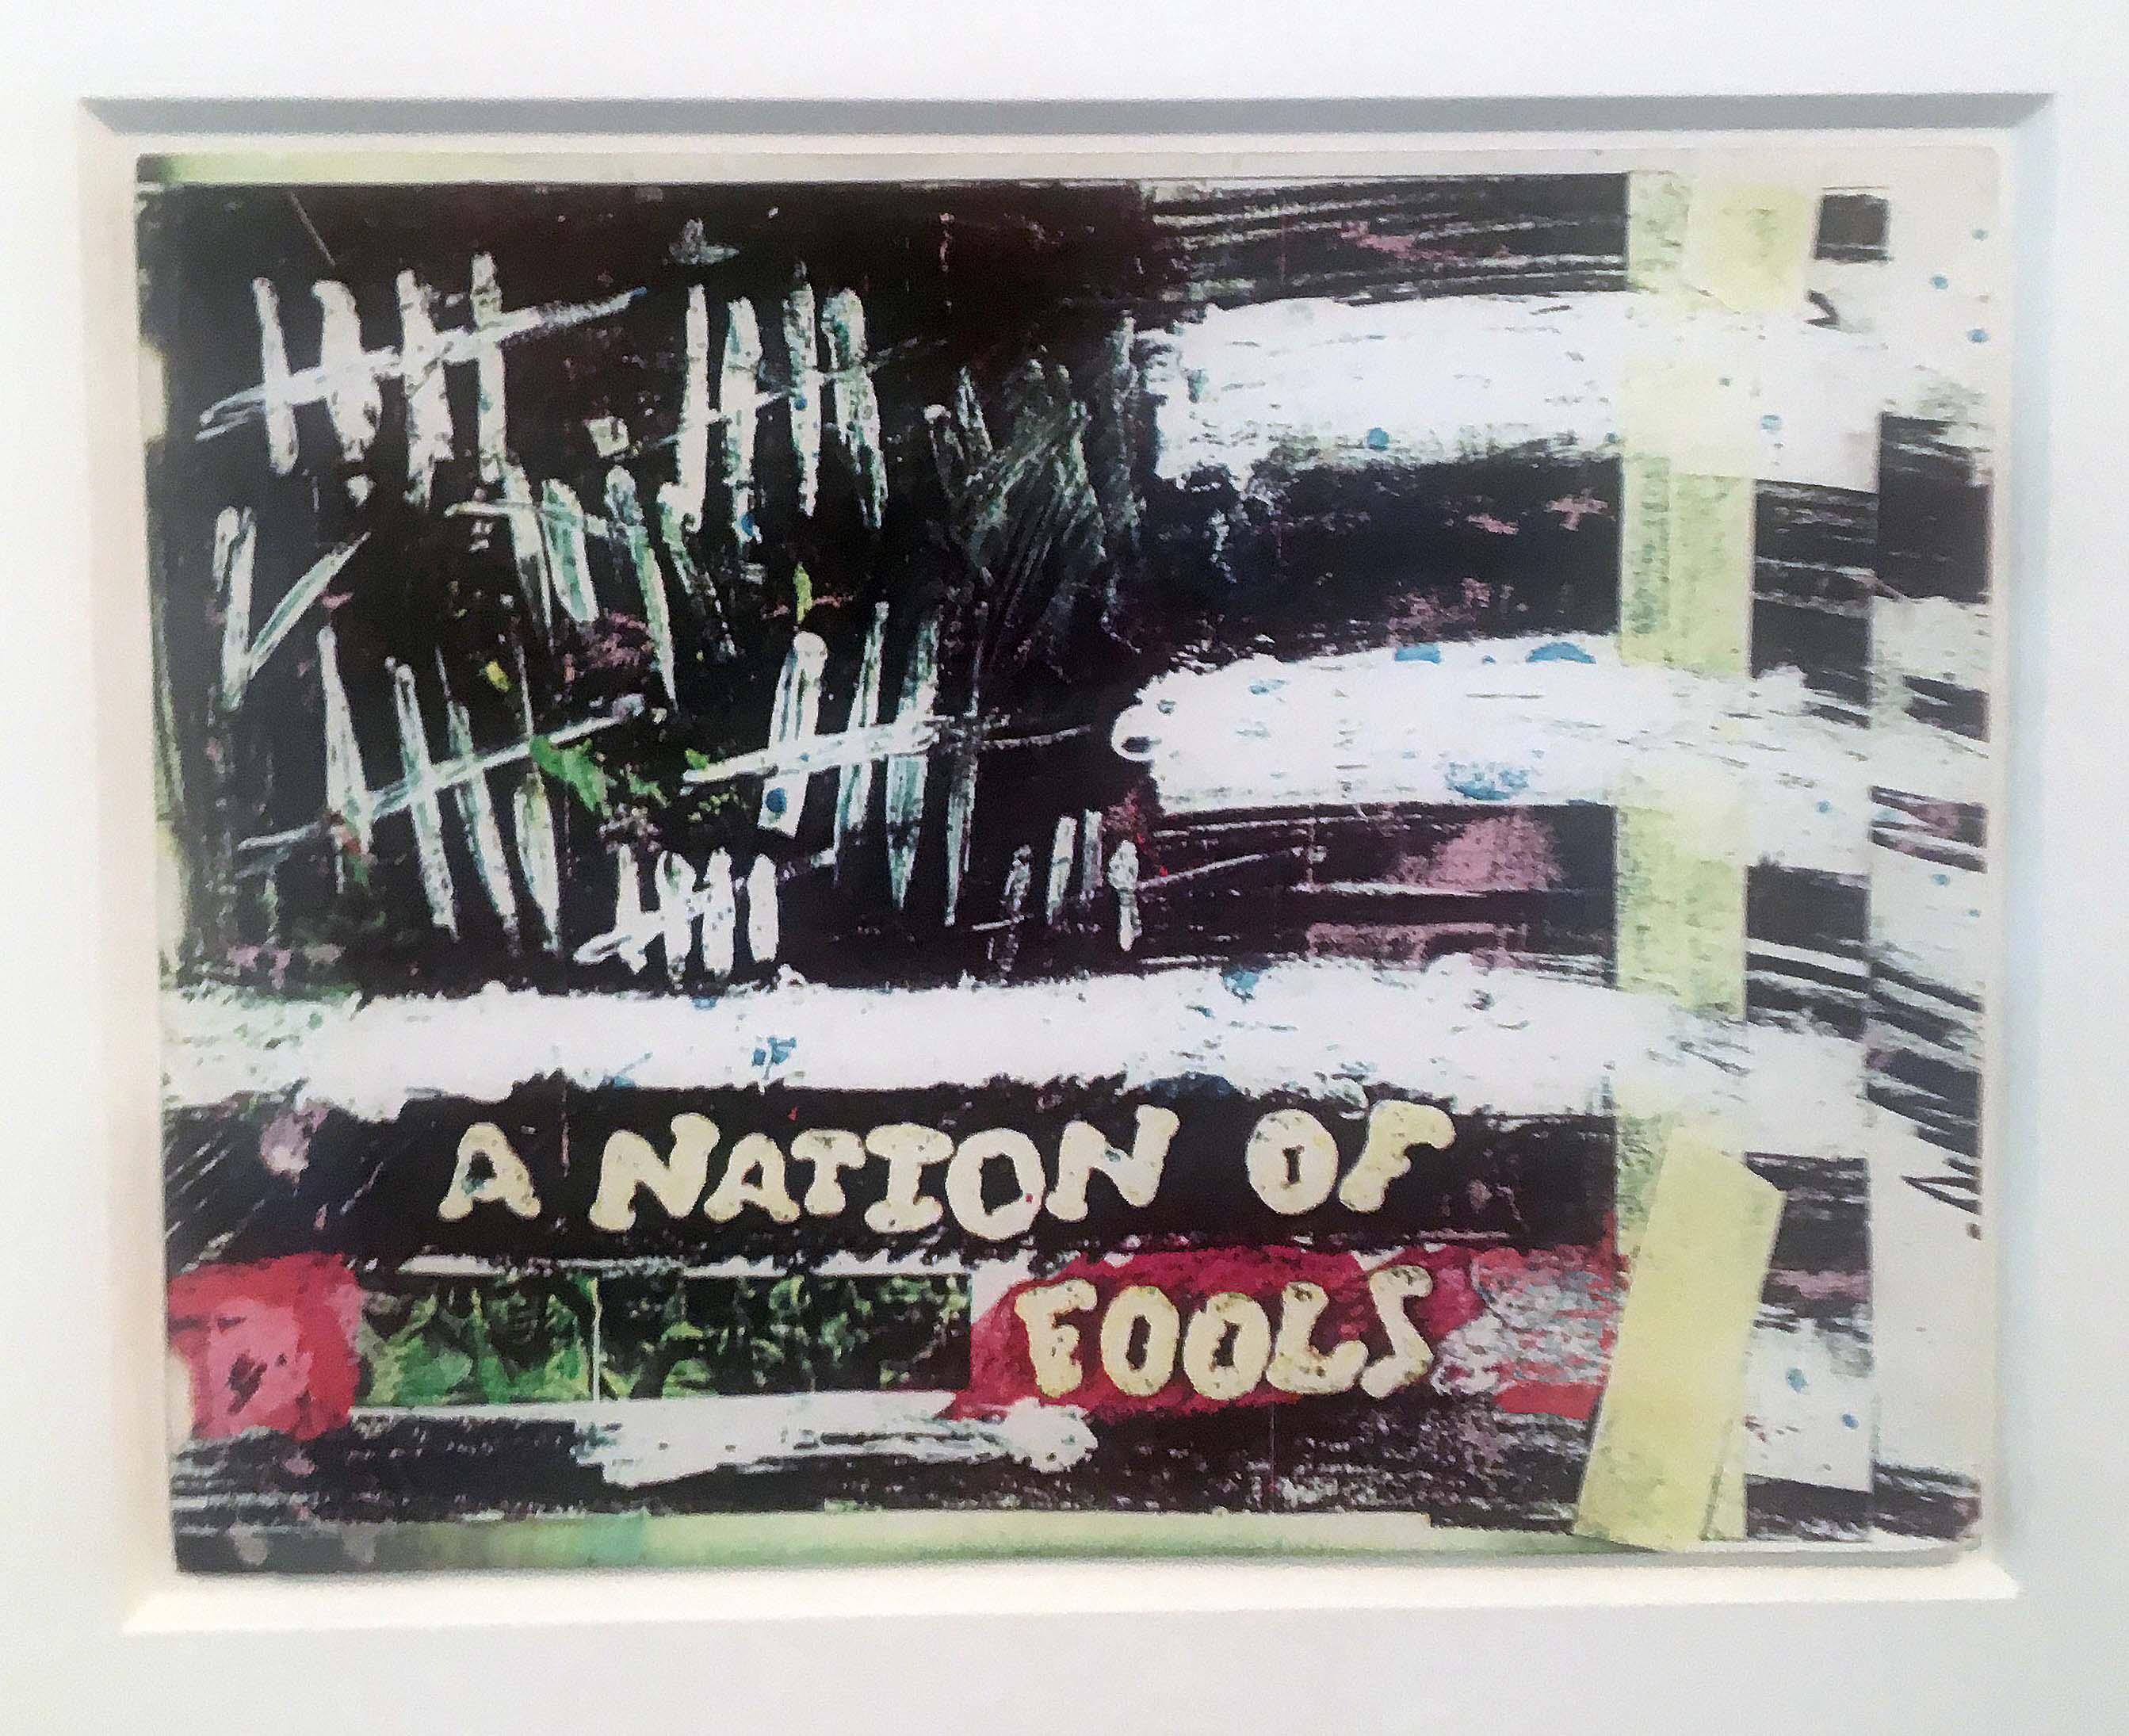 Untitled (A Nation of Fools) by Jean-Michel Basquiat